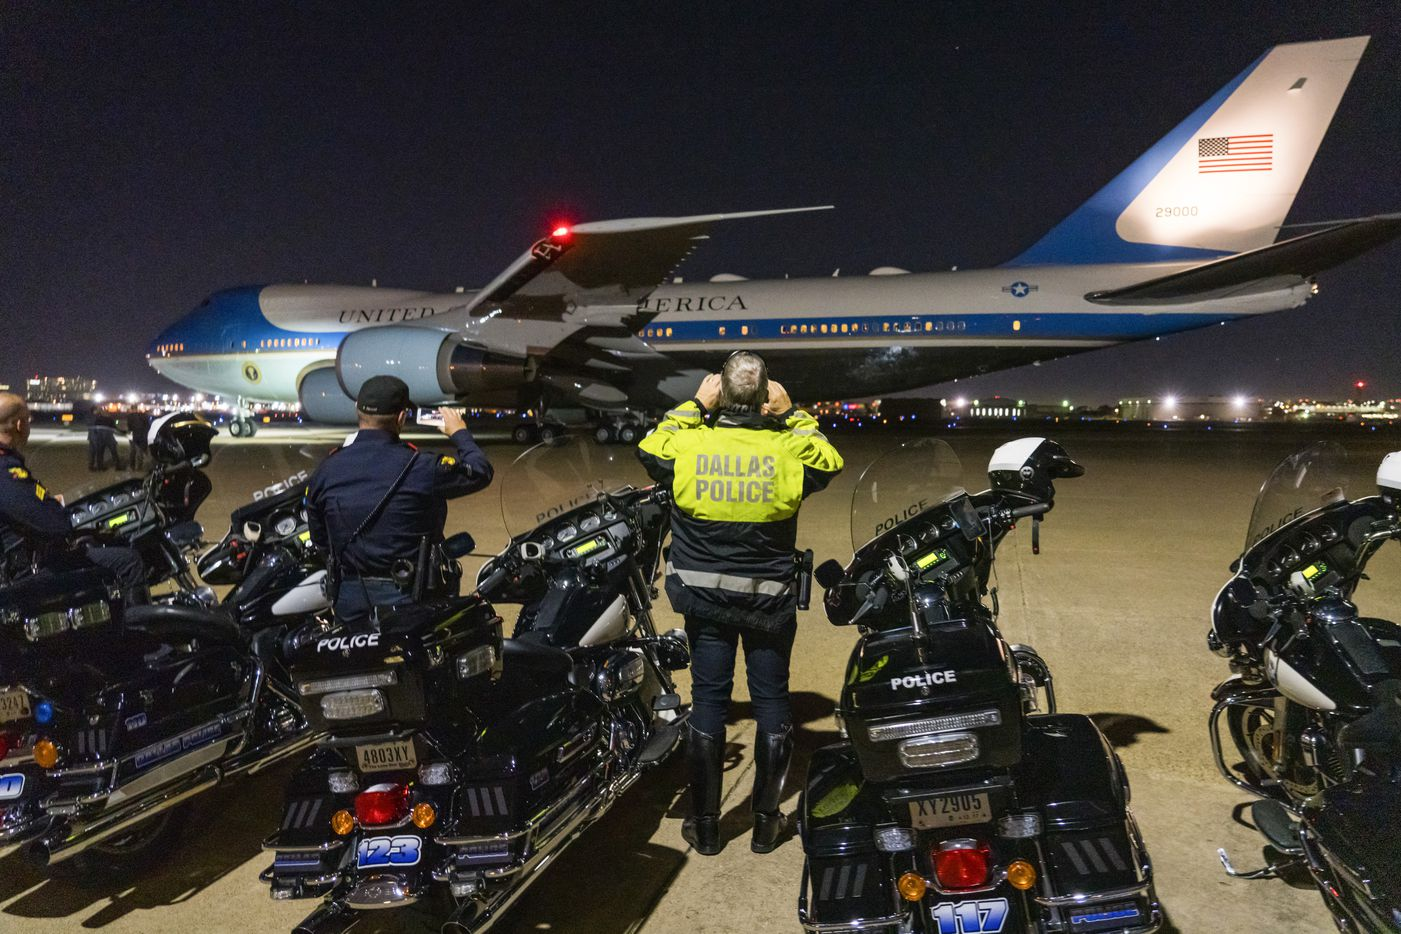 Dallas Police take photos of Air Force One as it departs Love Field after President Donald Trump visited Dallas campaign rally at the American Airlines Center on Thursday, Oct. 17, 2019, in Dallas.